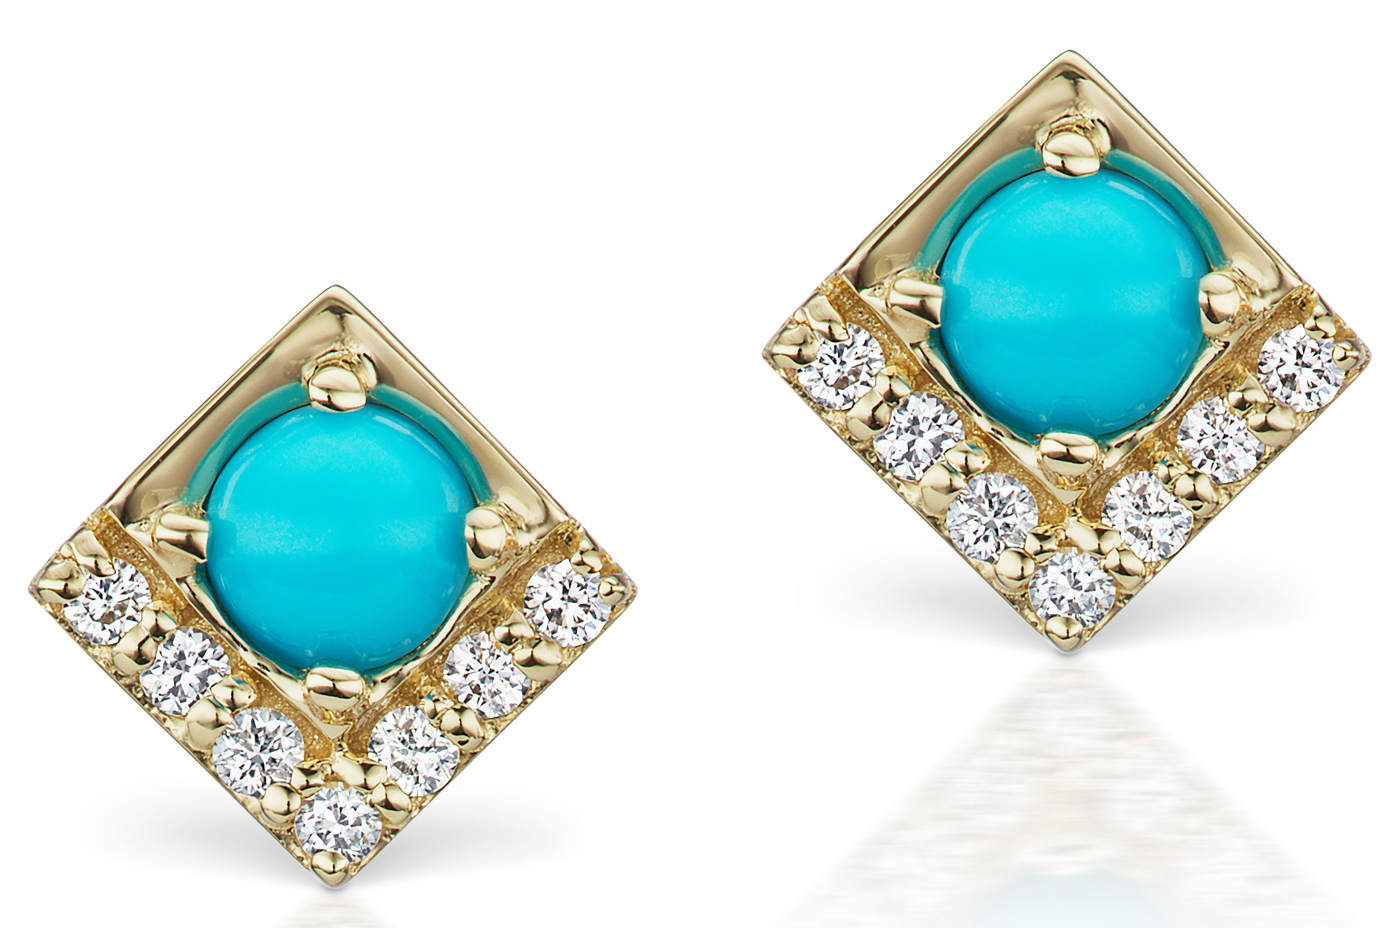 Jane Taylor Jewelry Cirque petite turquoise stud earrings | JCK On Your Market